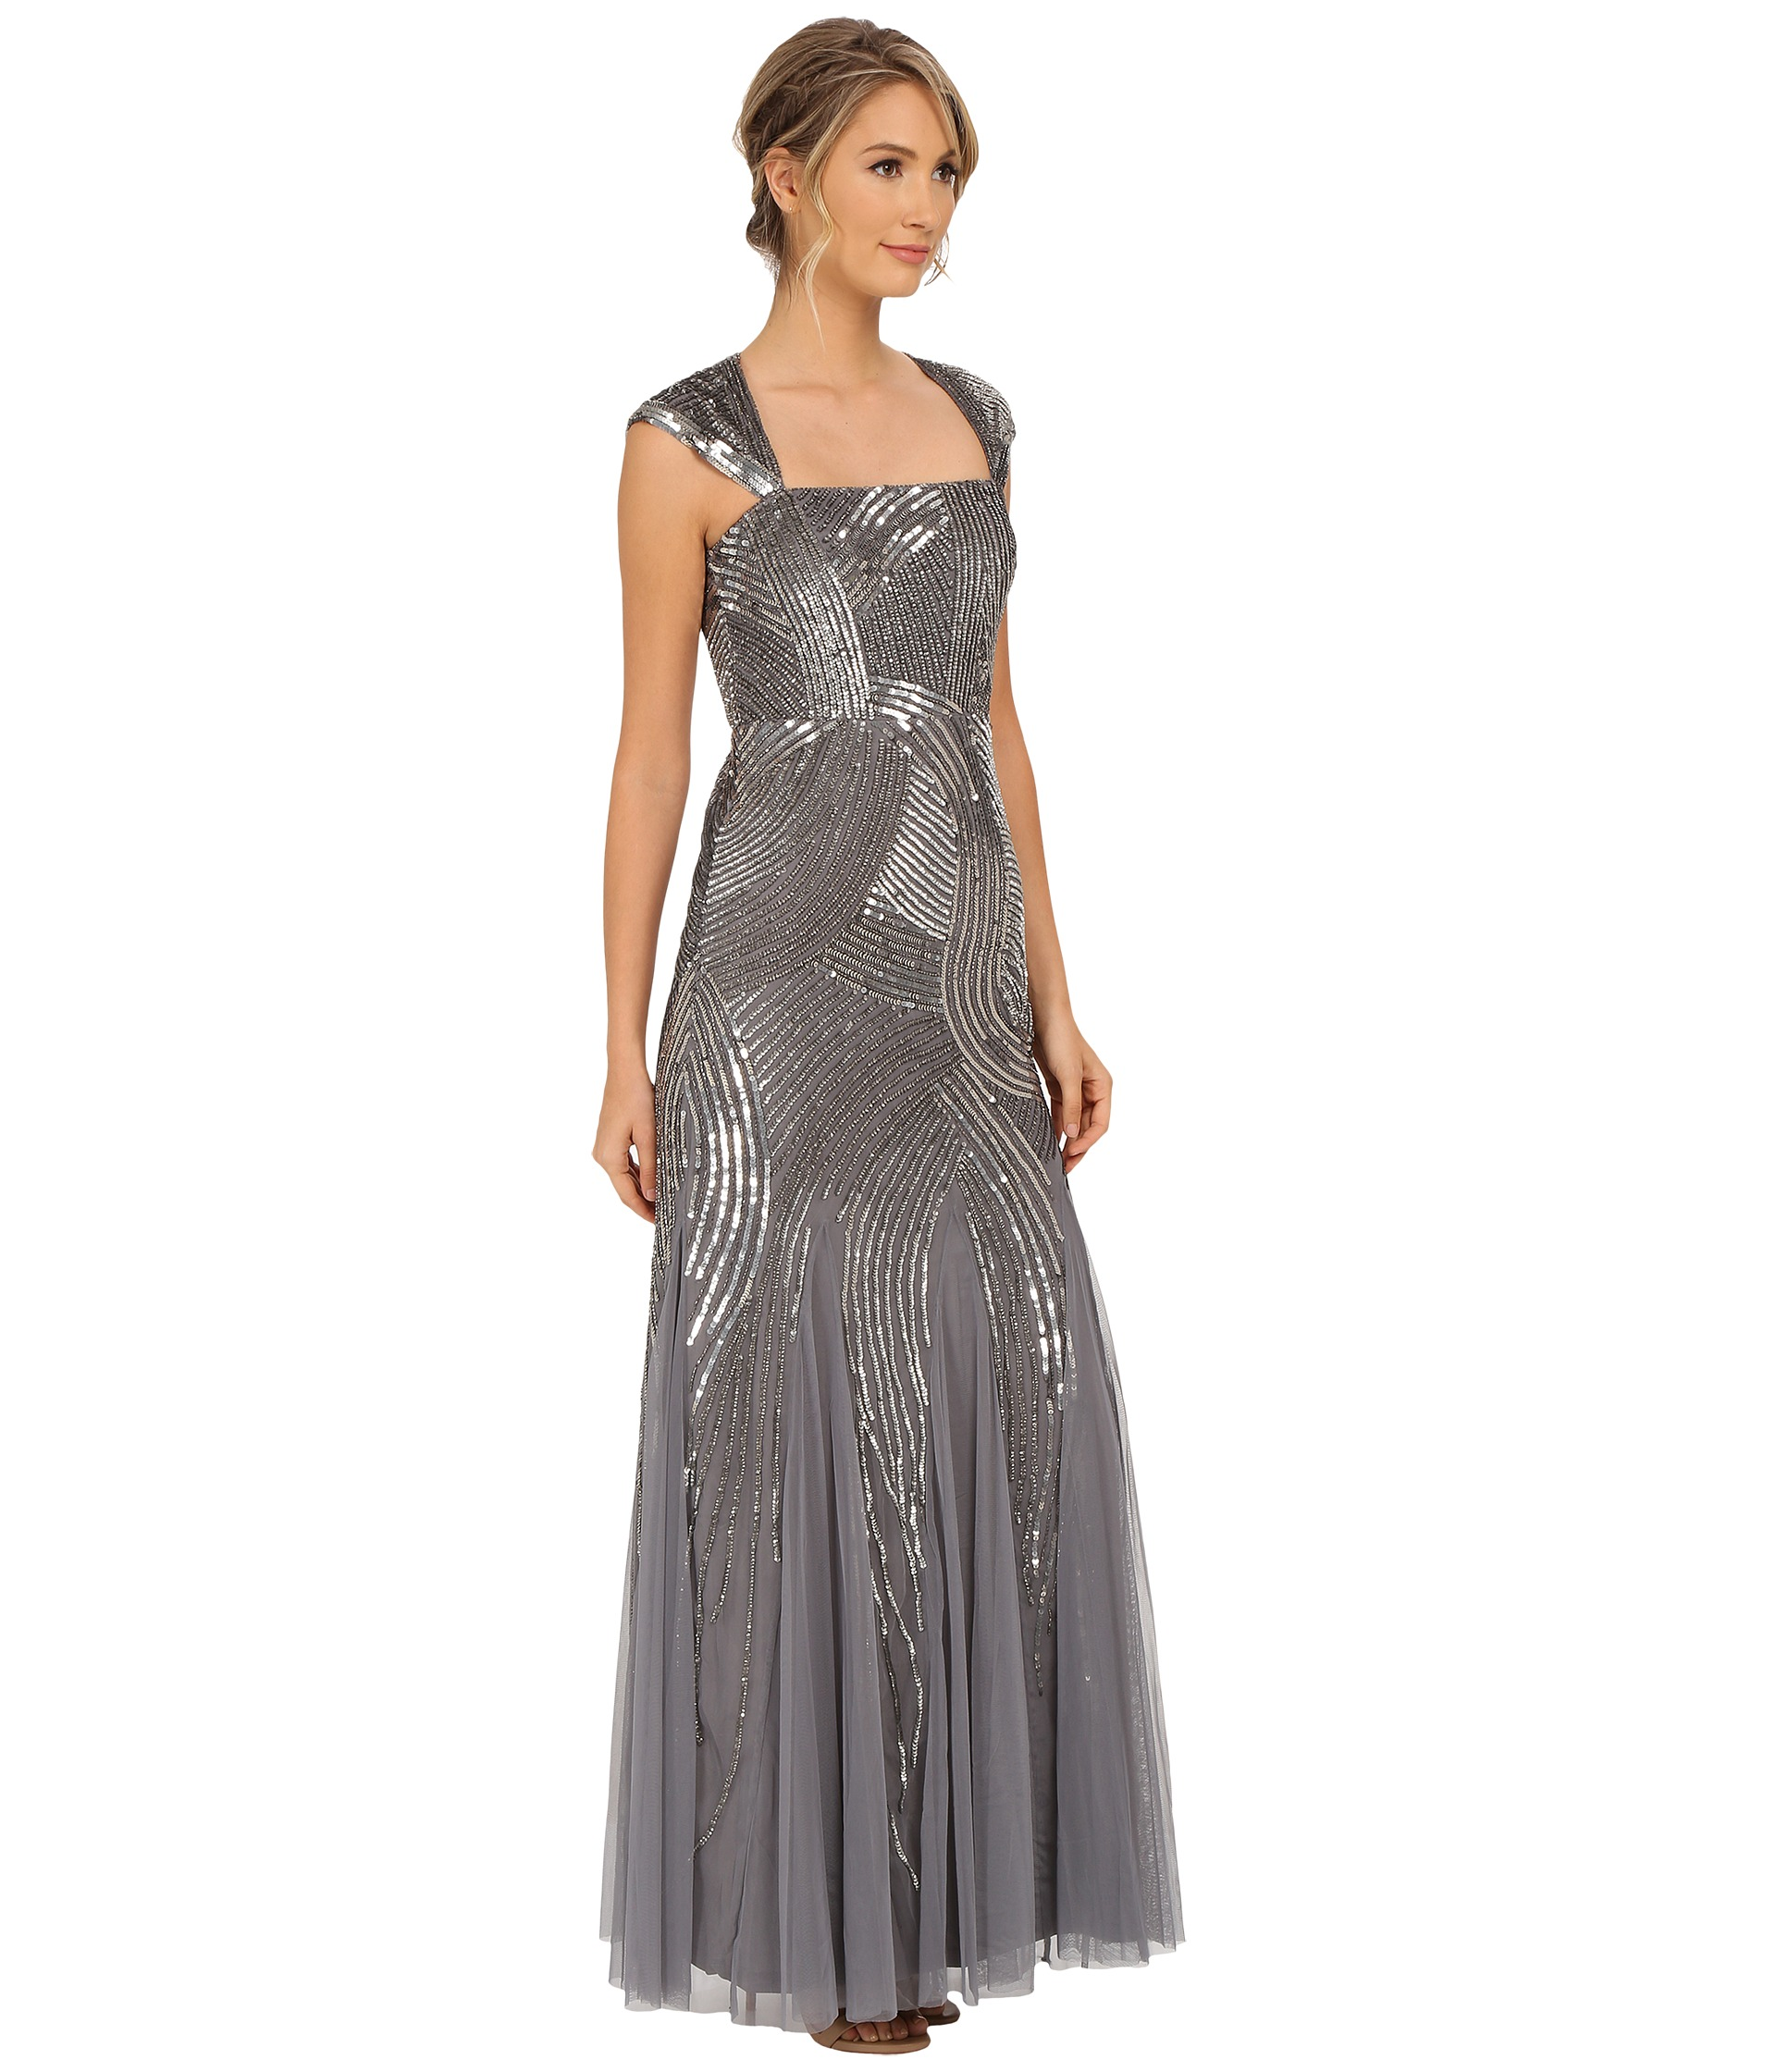 Turmec » adrianna papell beaded one shoulder taffeta dress